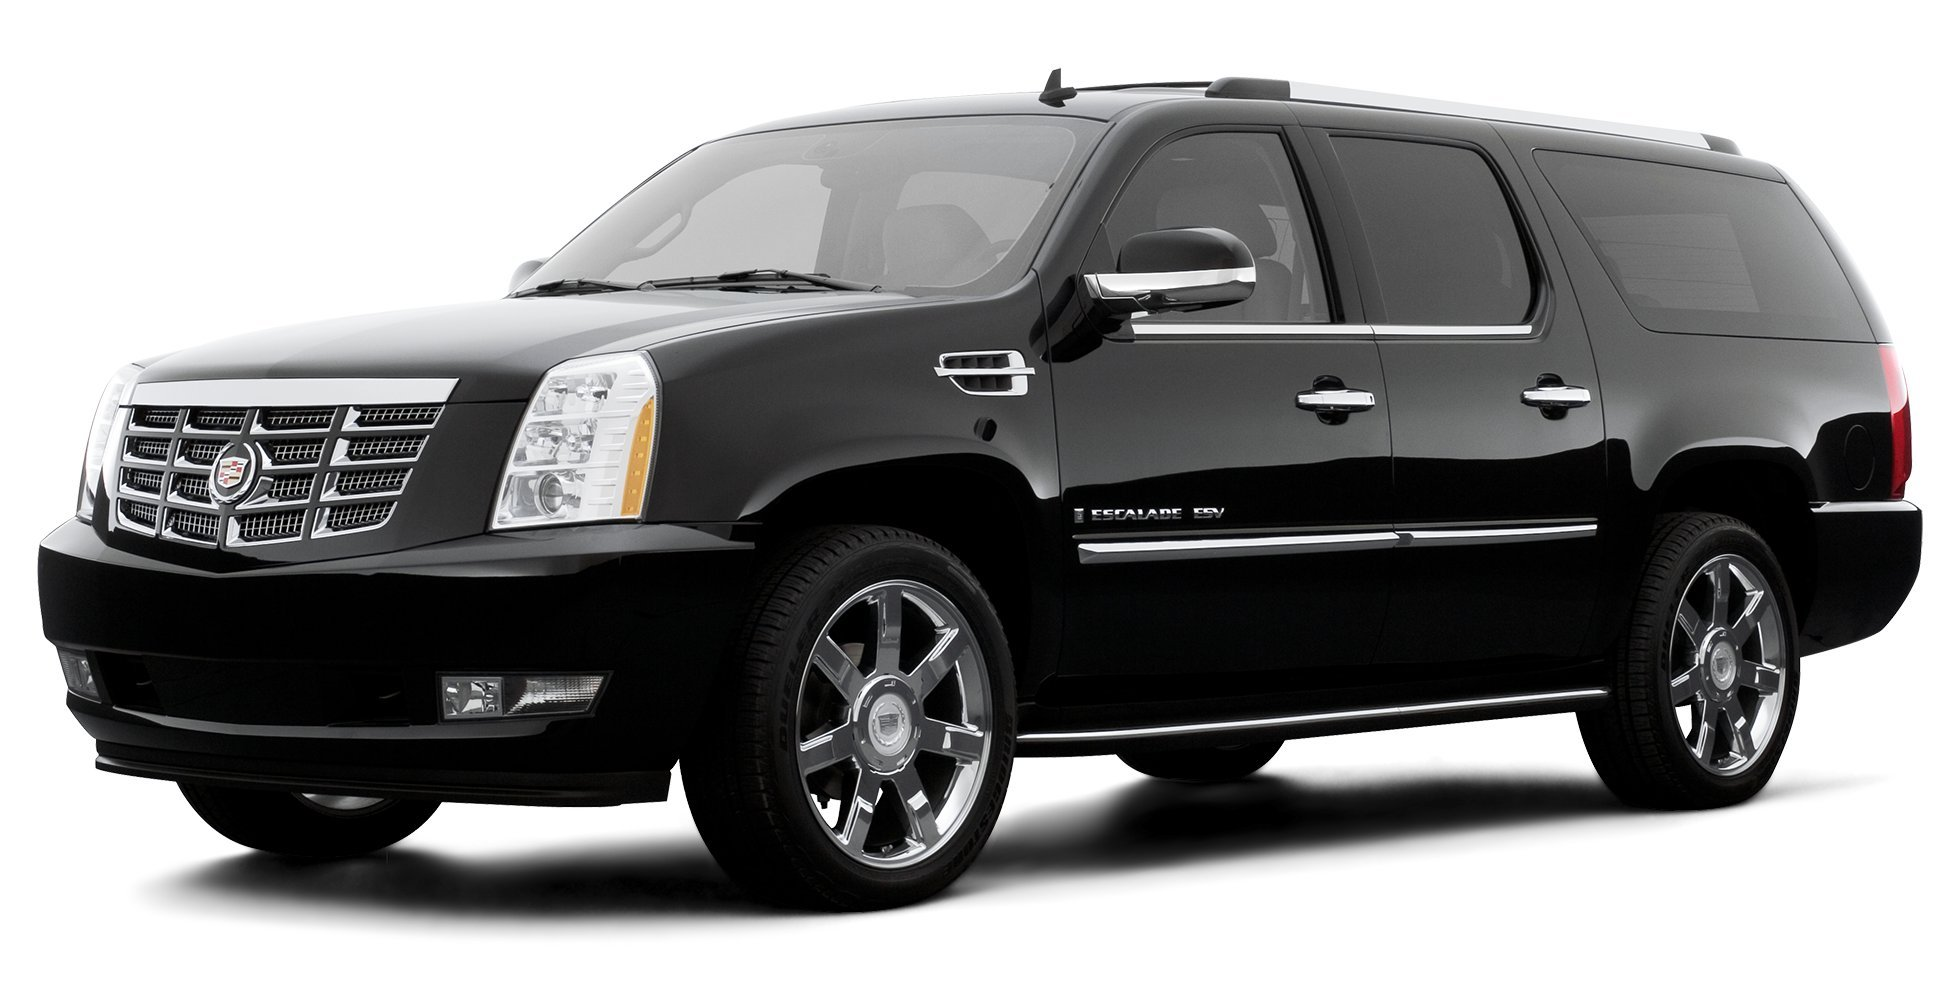 2007 cadillac escalade esv reviews images and specs vehicles. Black Bedroom Furniture Sets. Home Design Ideas